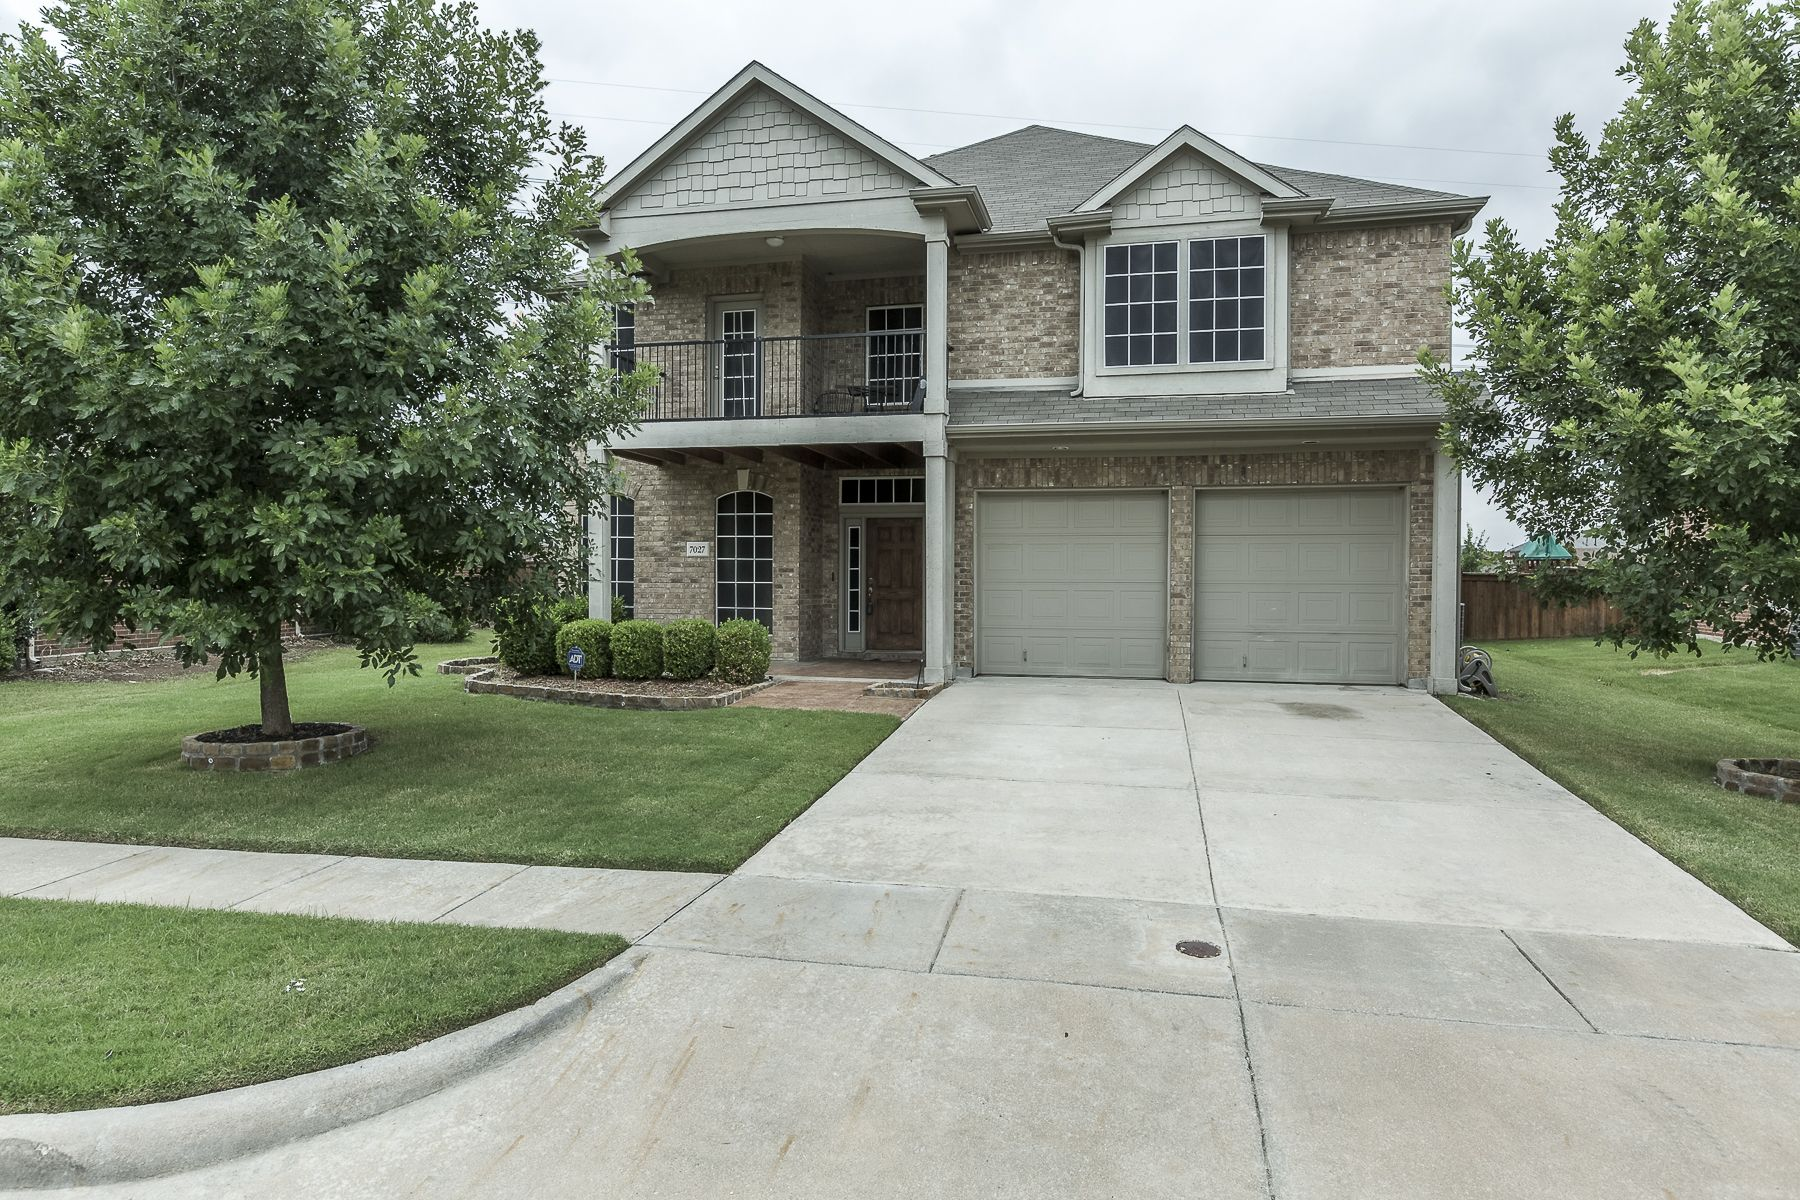 7027 N Serrano 5 Bedroom Home In Mansfield Isd Features Solar